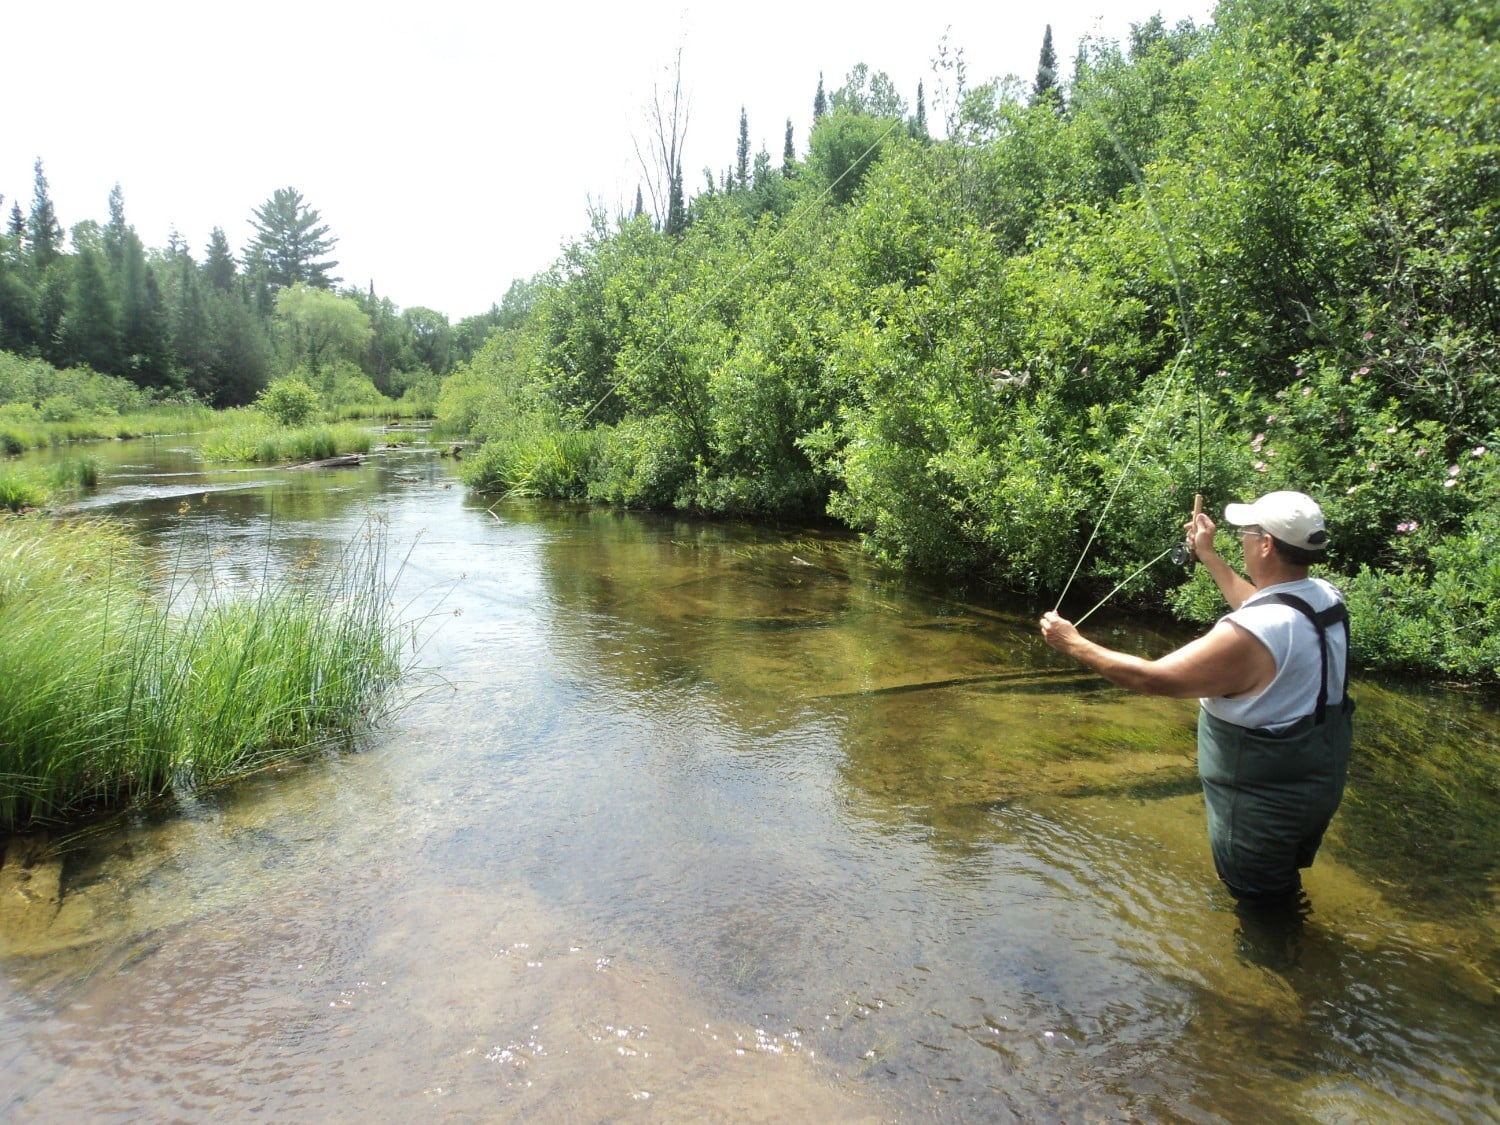 Flyfishing on the Au Sable River